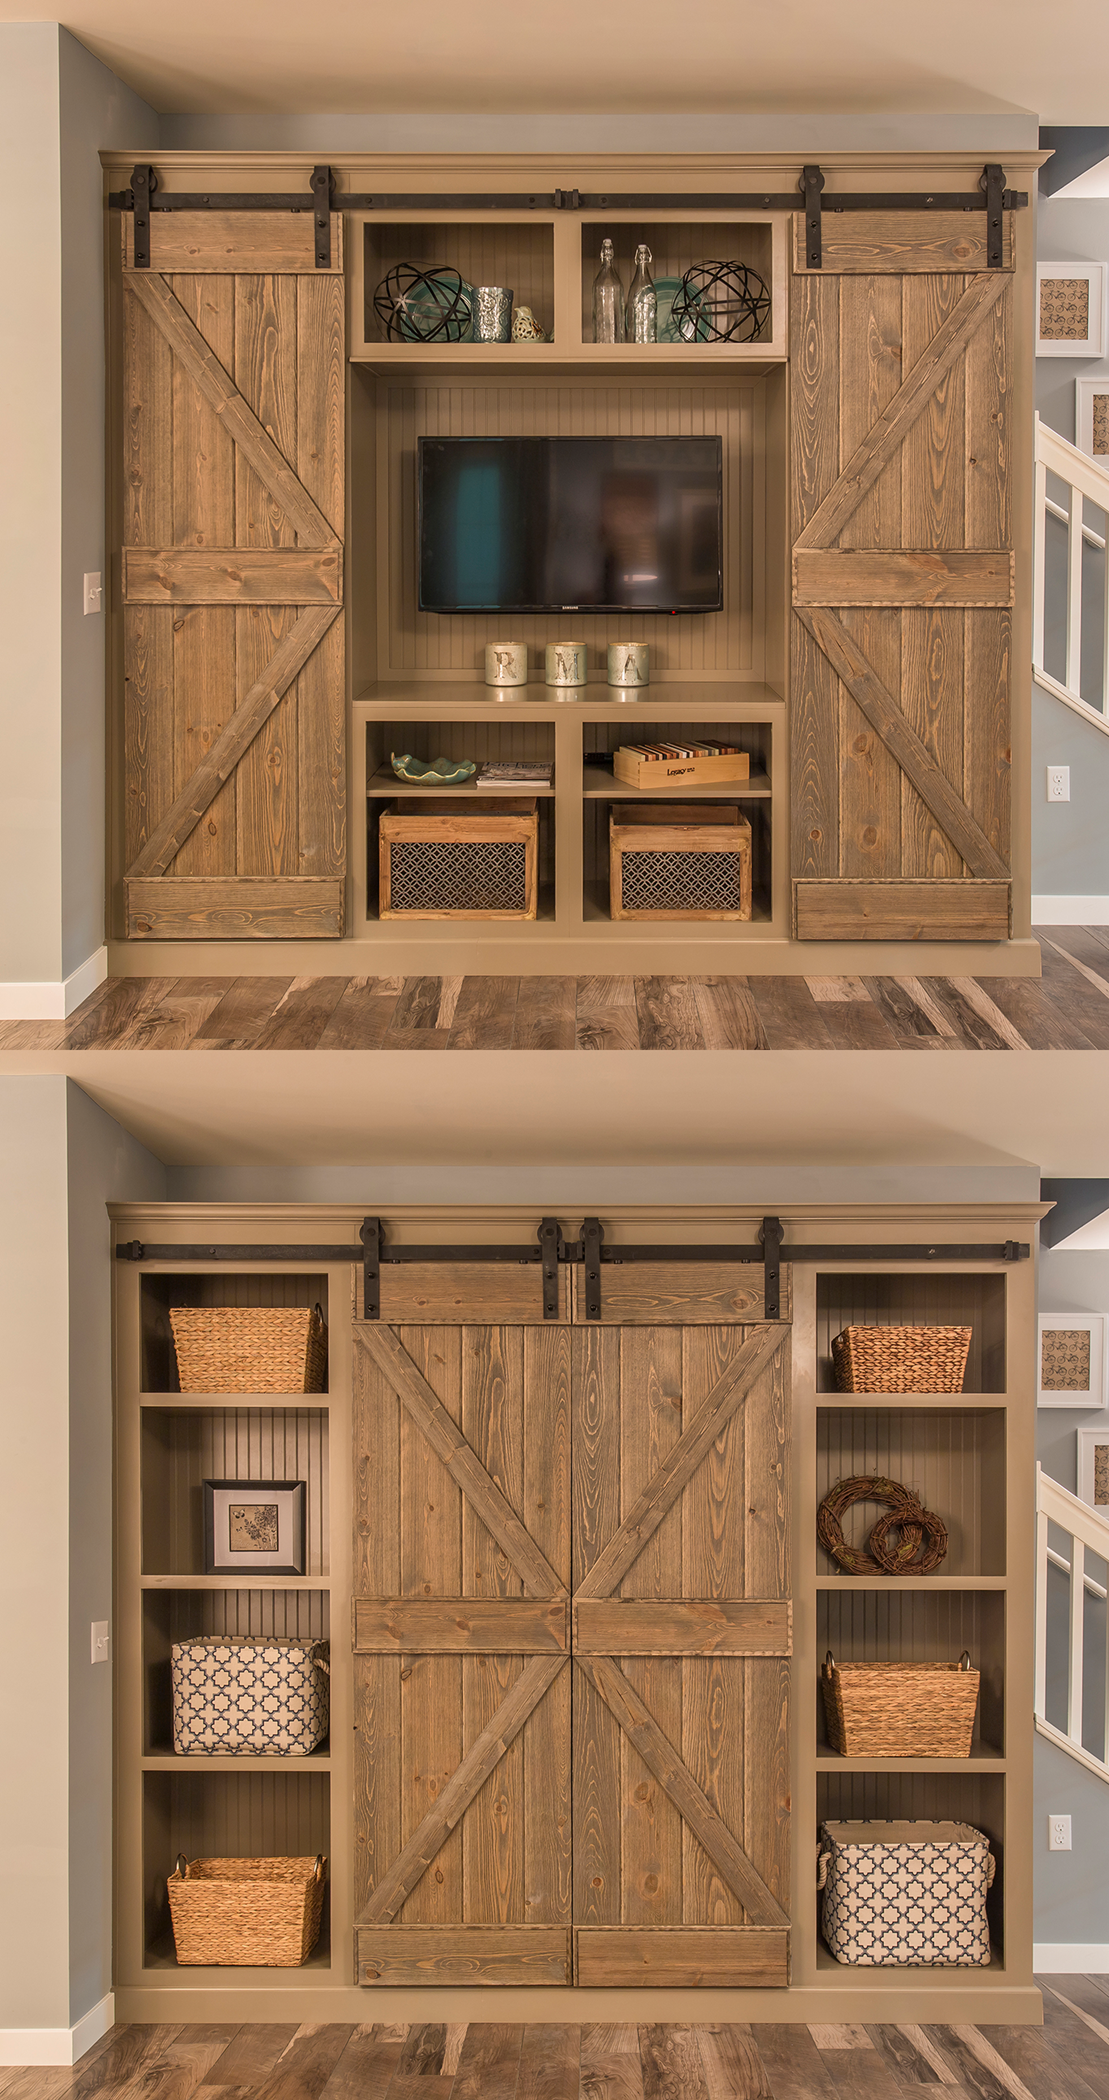 Open the barn doors for an entertainment center and close them for a